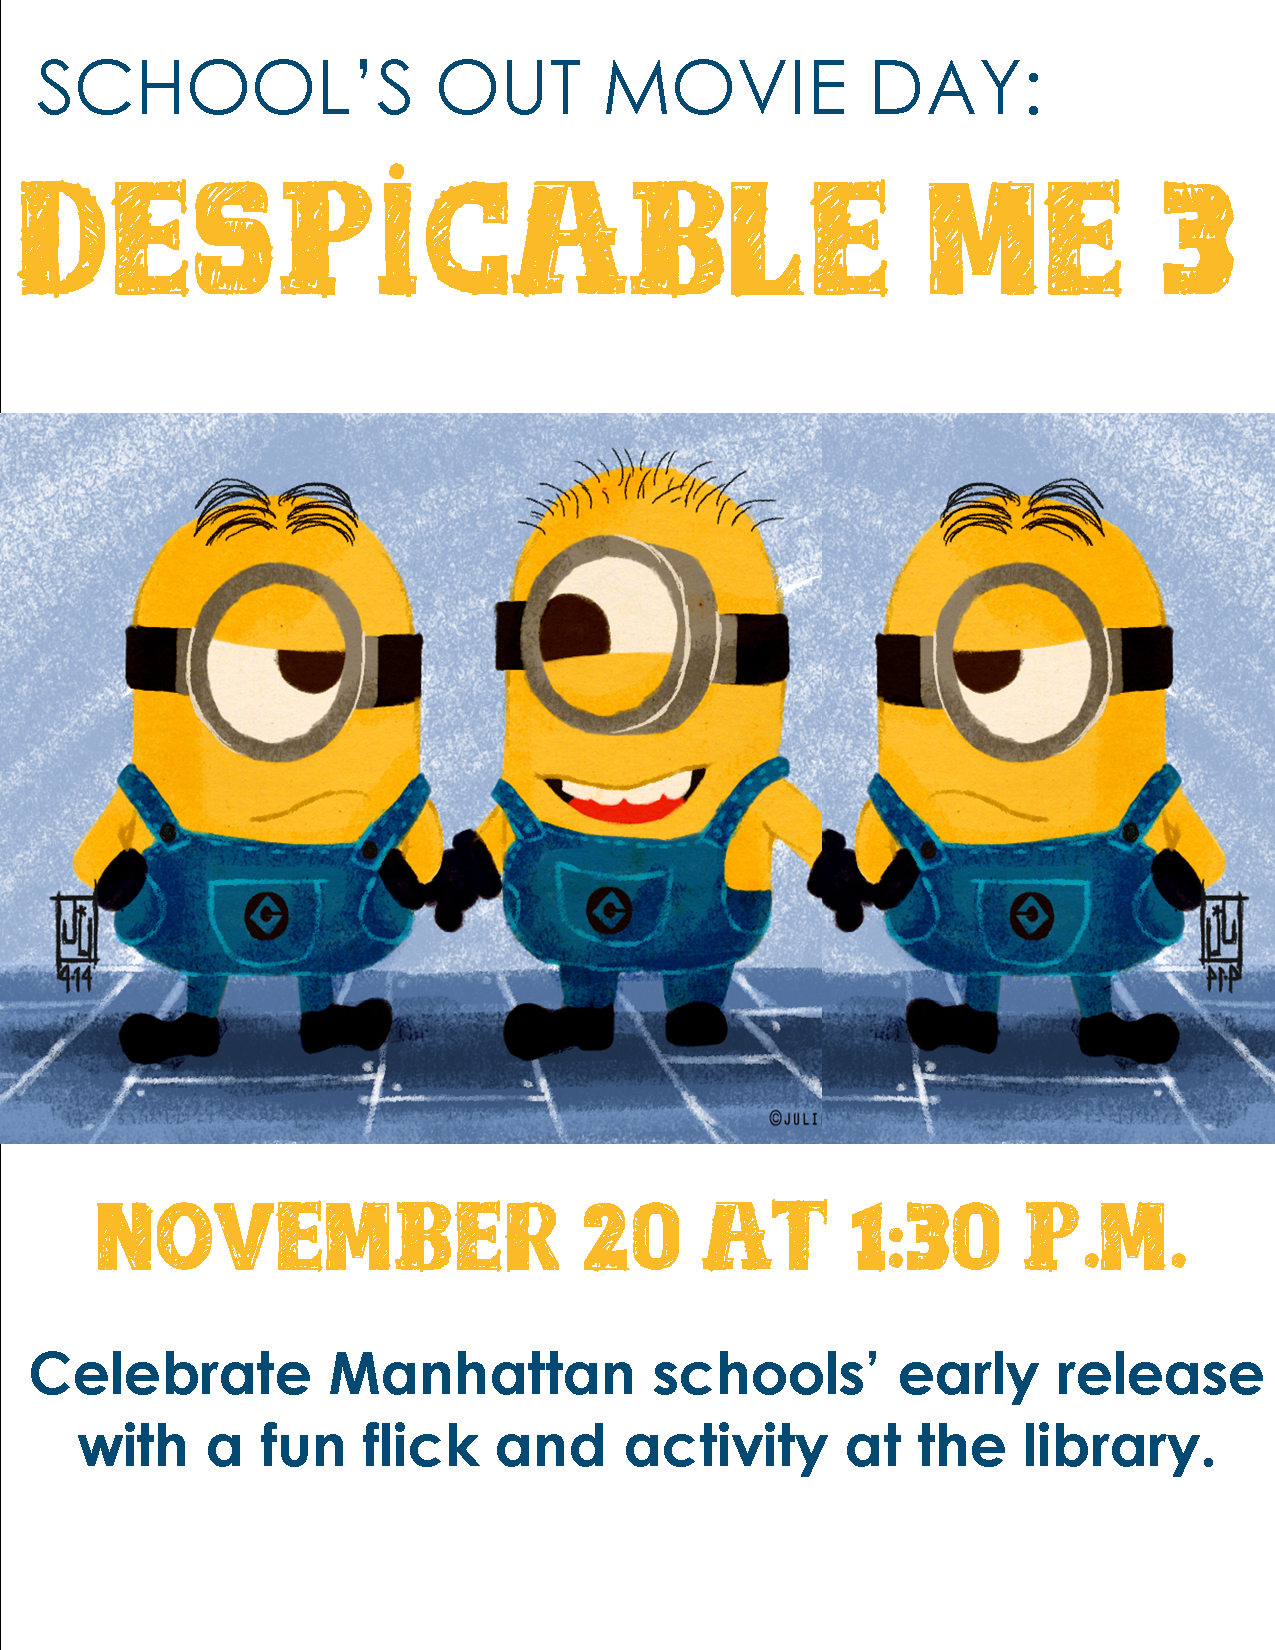 Movie Day: Despicable Me 3